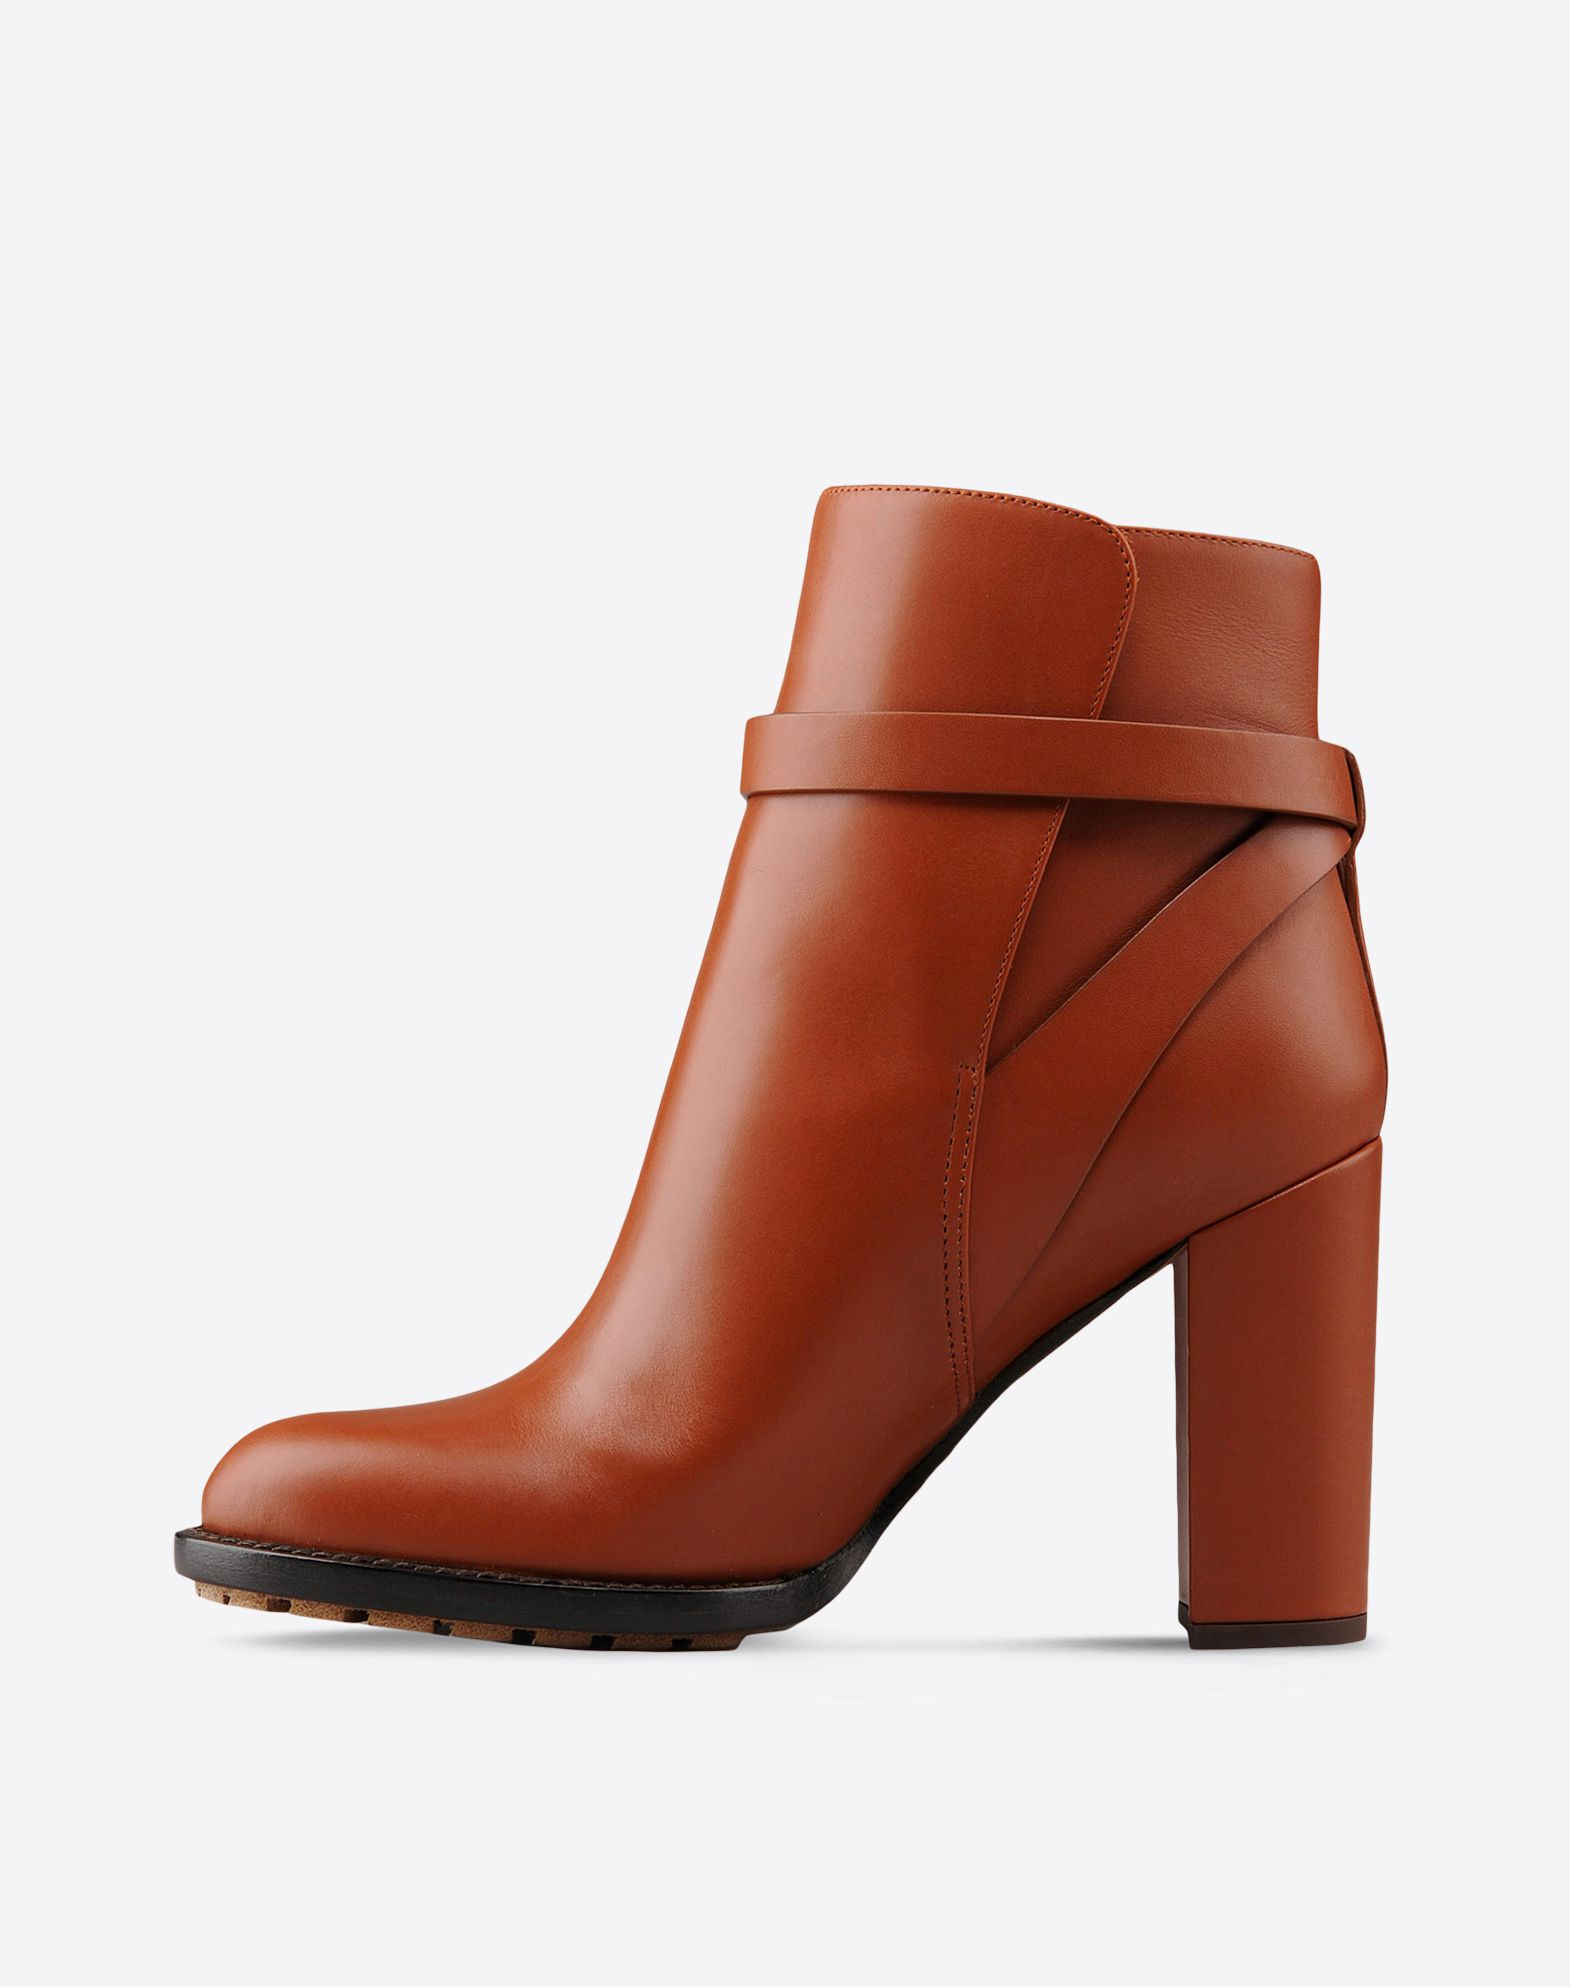 VALENTINO Solid color Side buckle closure Leather sole Round toeline Covered heel  44680959lv